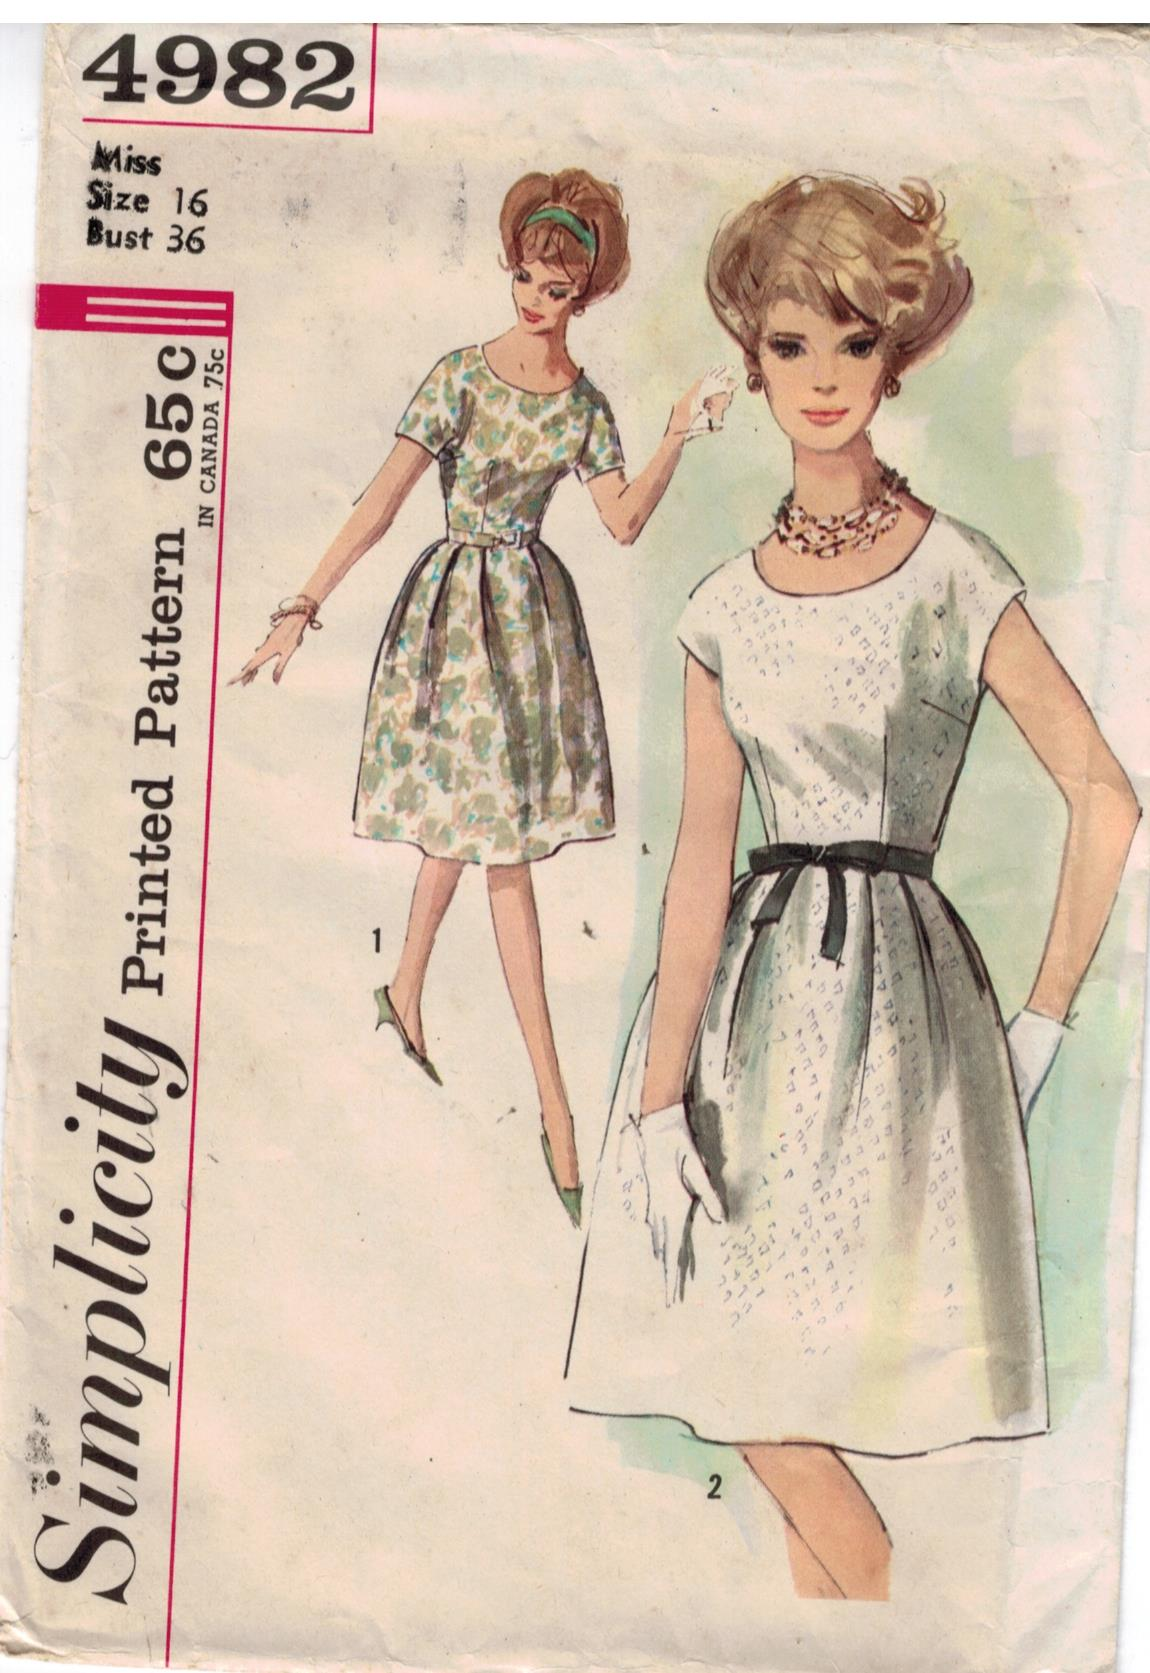 Vintage Sewing Patterns Simplicity | Sewing Pattern Heaven - Part 2